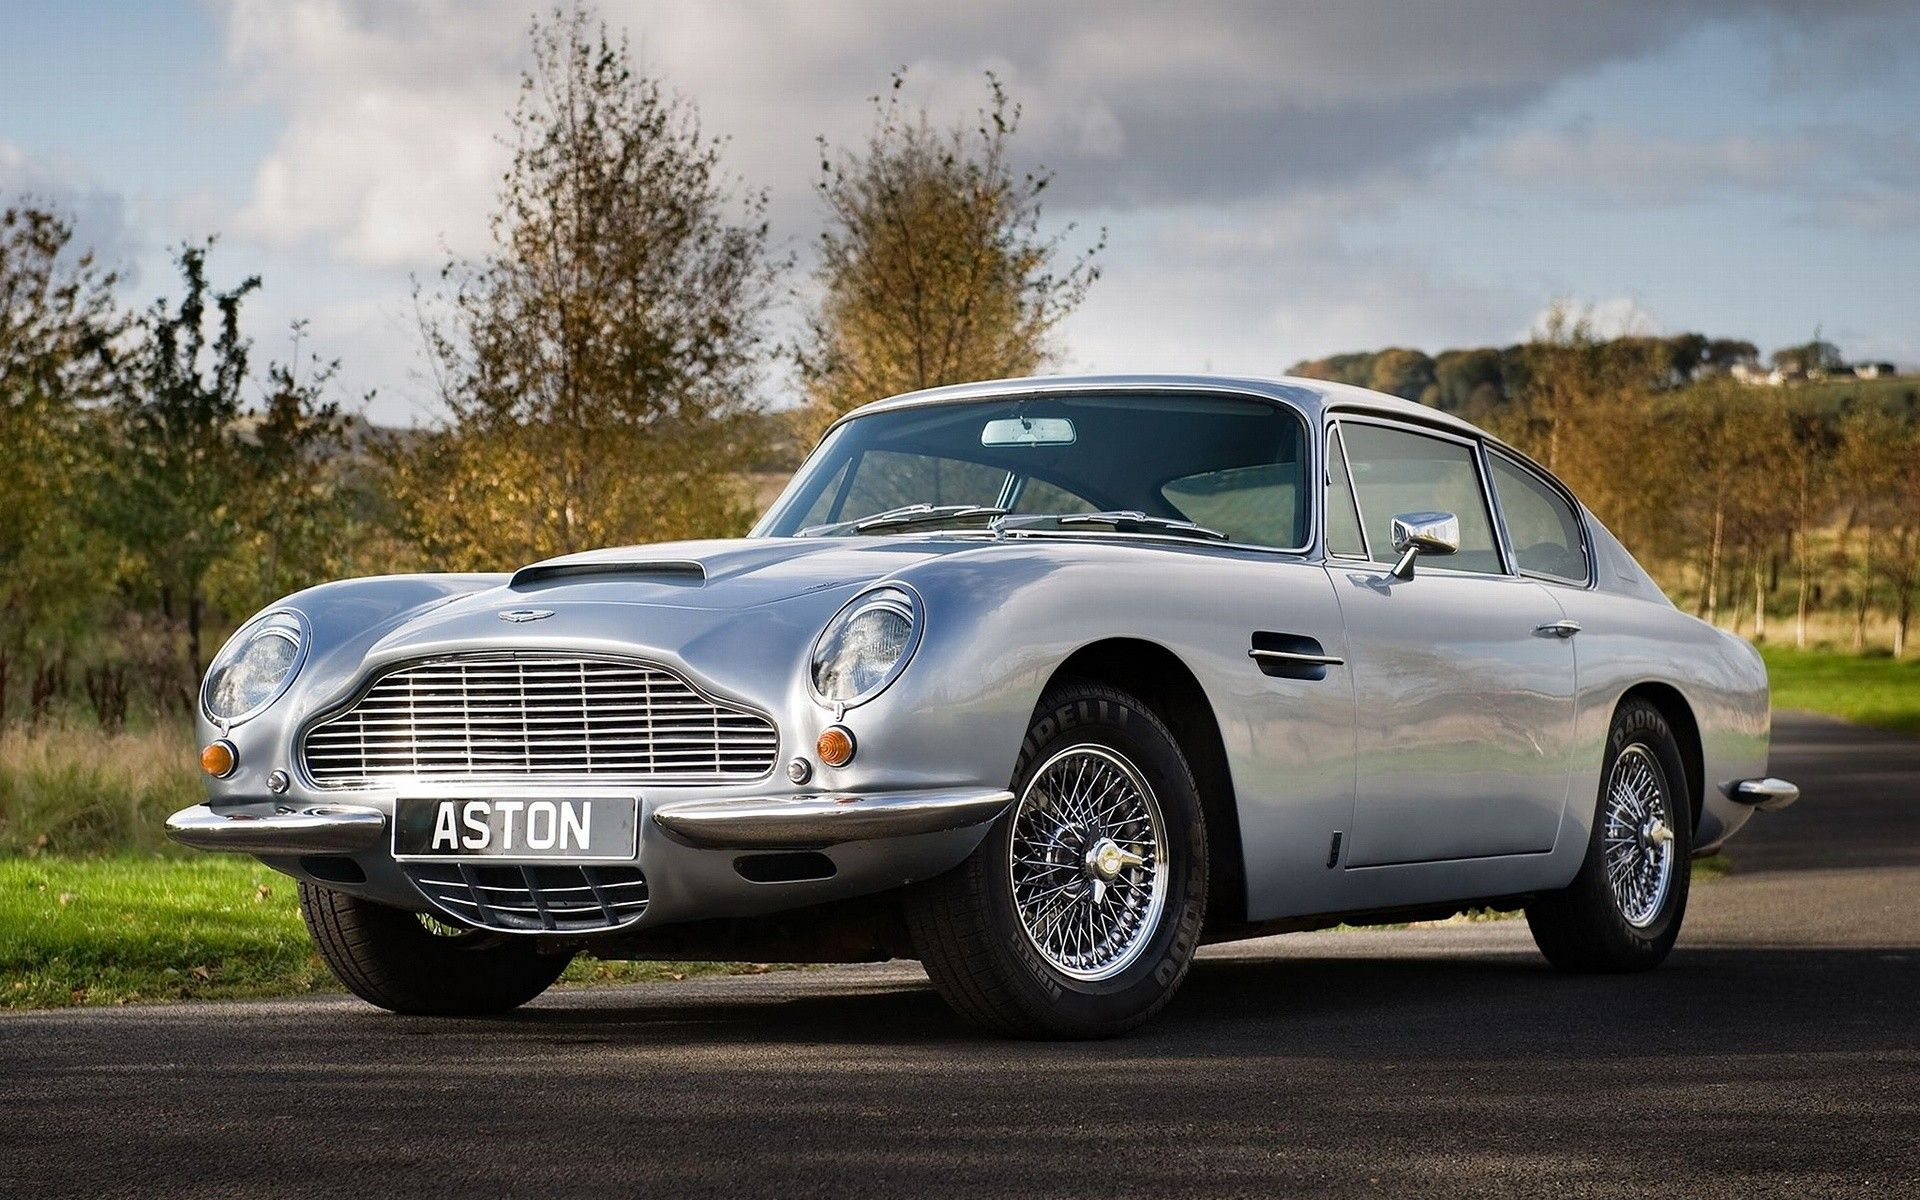 aston martin db5 | cars aston martin db5 fresh new hd wallpaper best